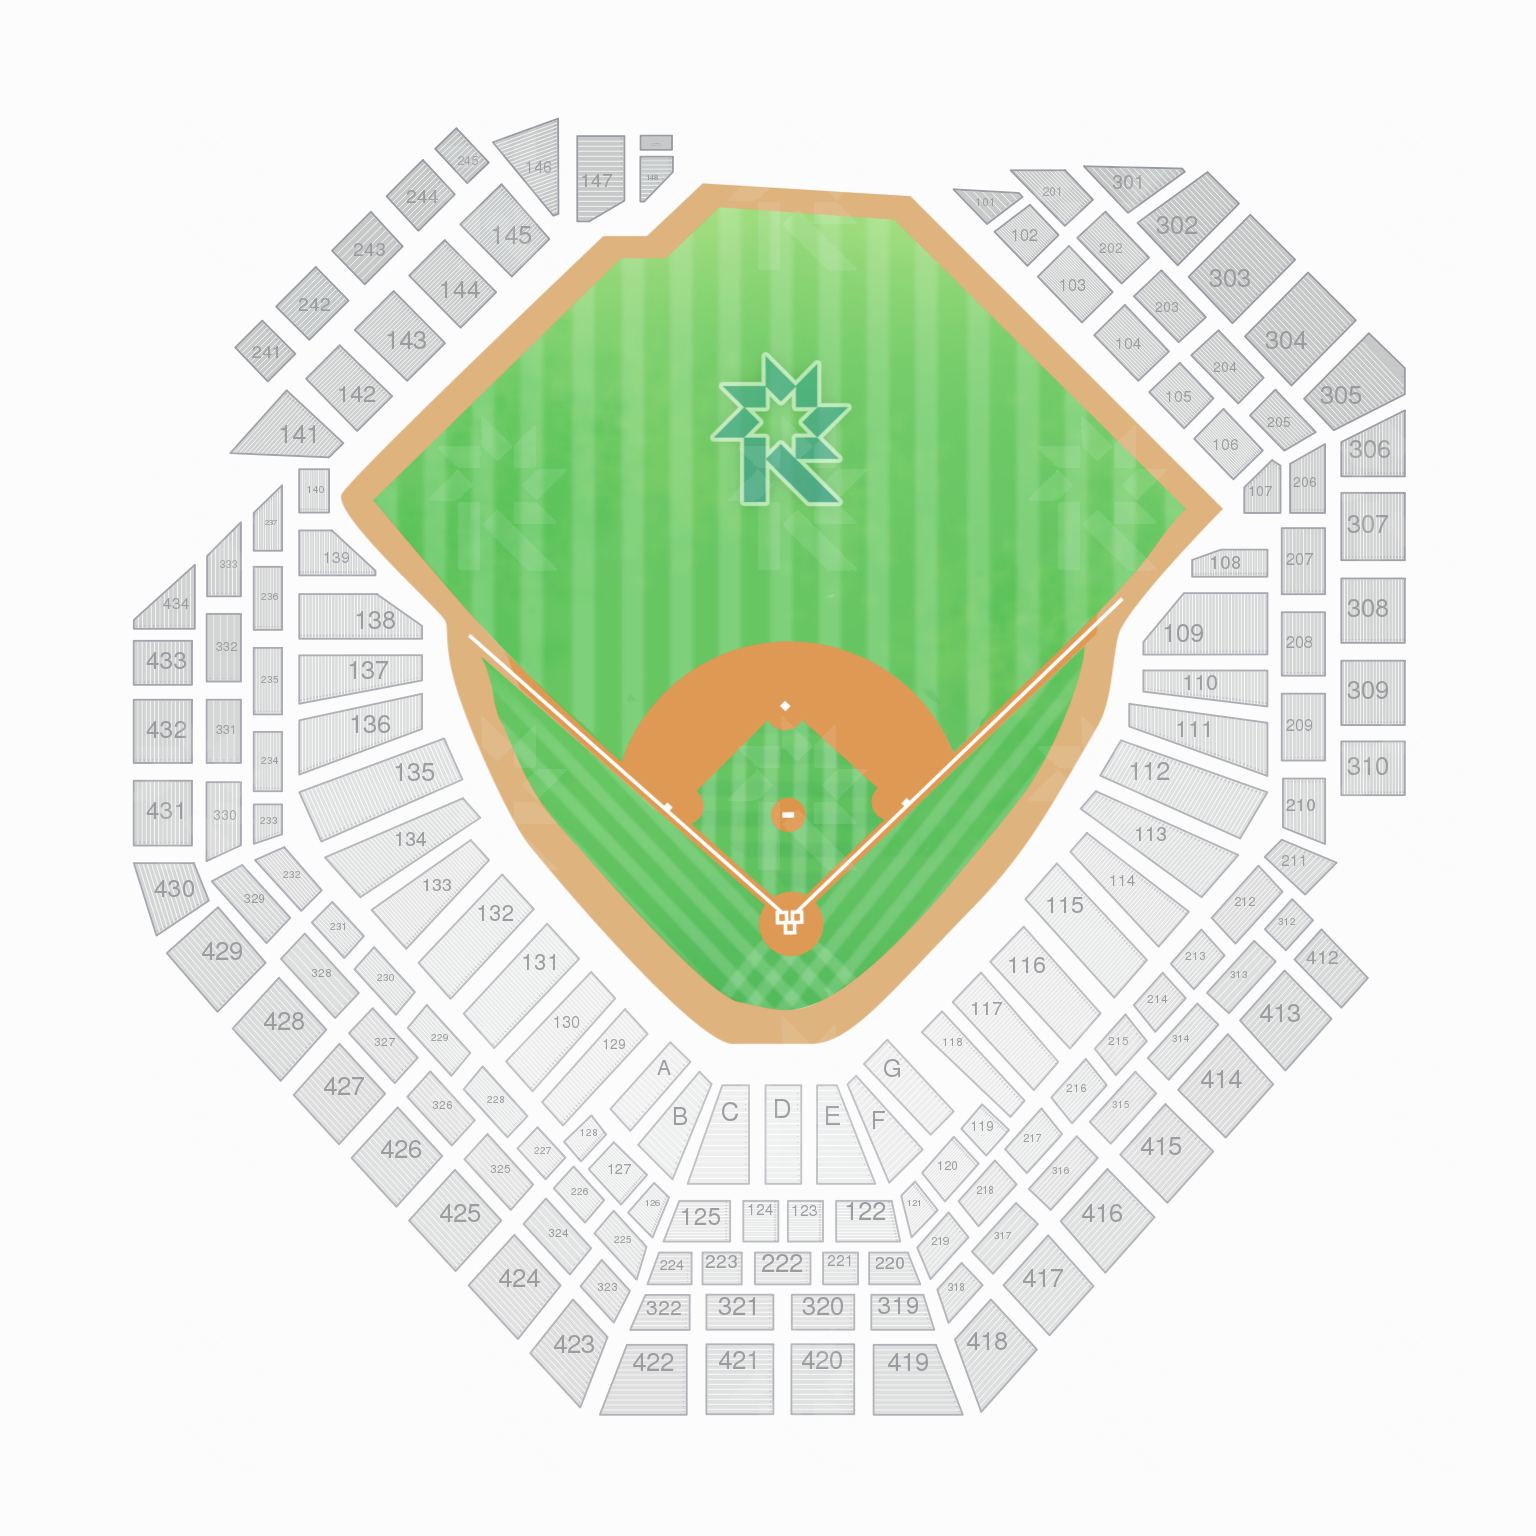 Wrigley Seating Chart Seat Numbers Elegant Citizens Bank Park Seating Chart with Seat Numbers